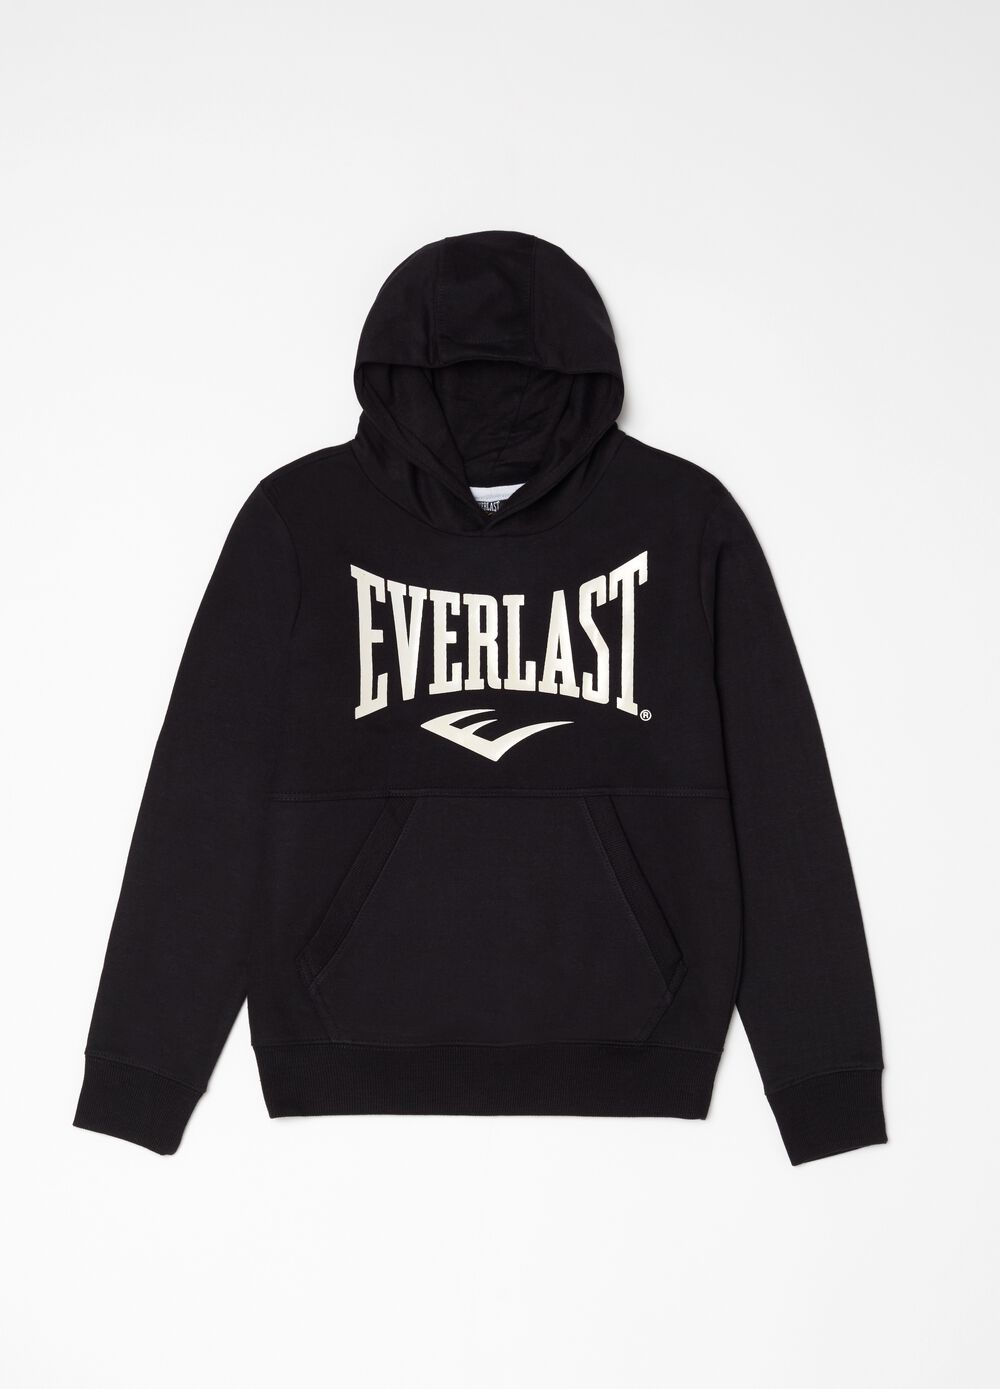 Crew-neck in 100% cotton with Everlast print